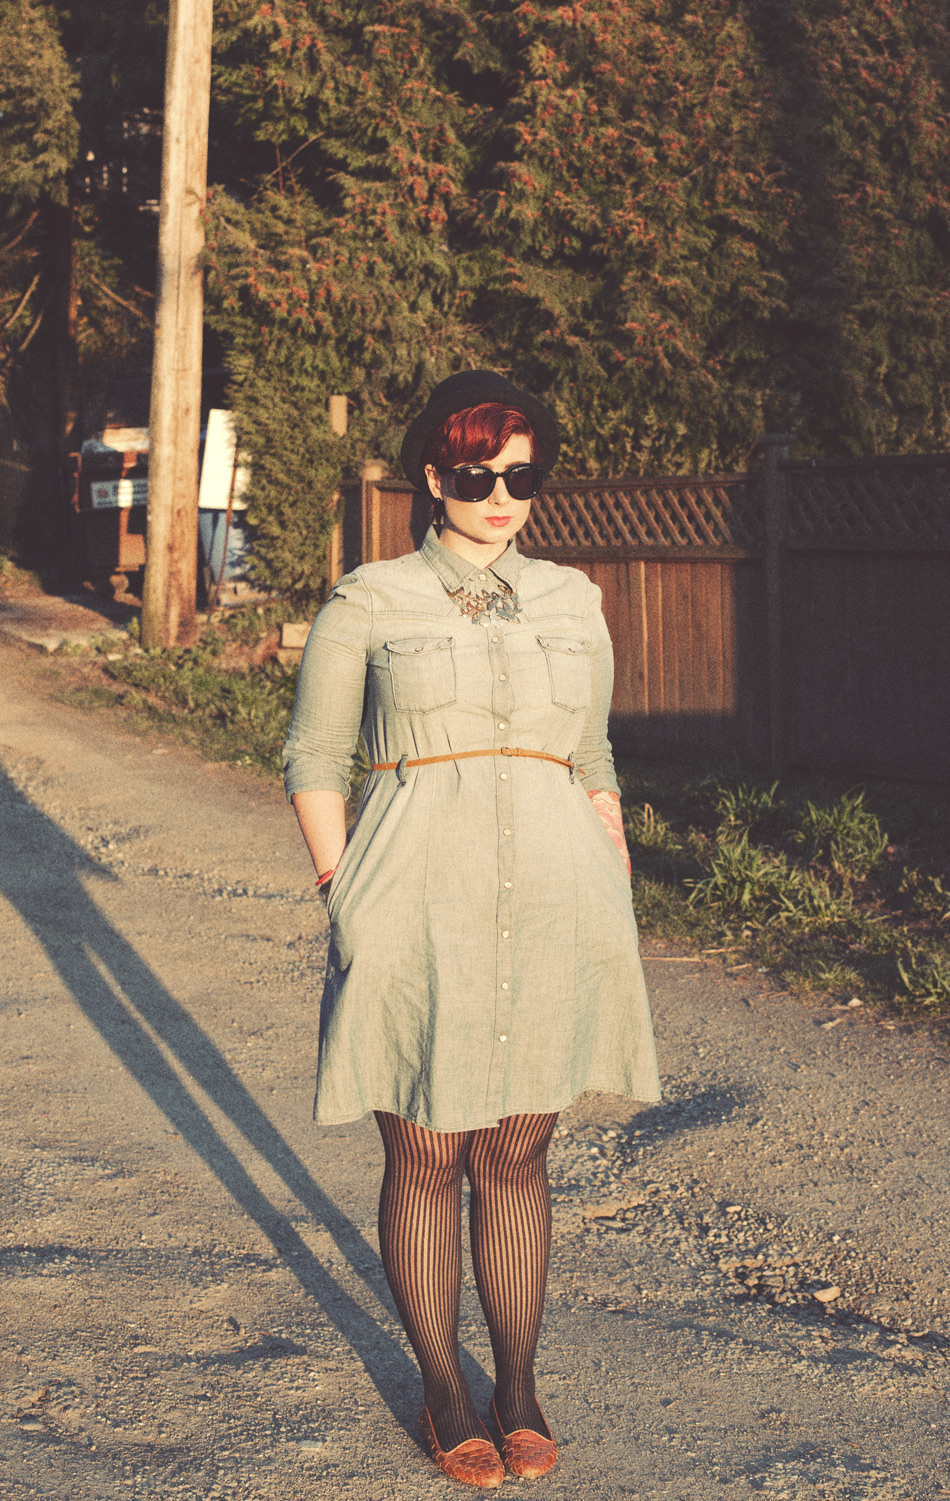 A full body photo of me, showing my denim dress. It's sunset and I'm casting a creepy, long-legged shadow